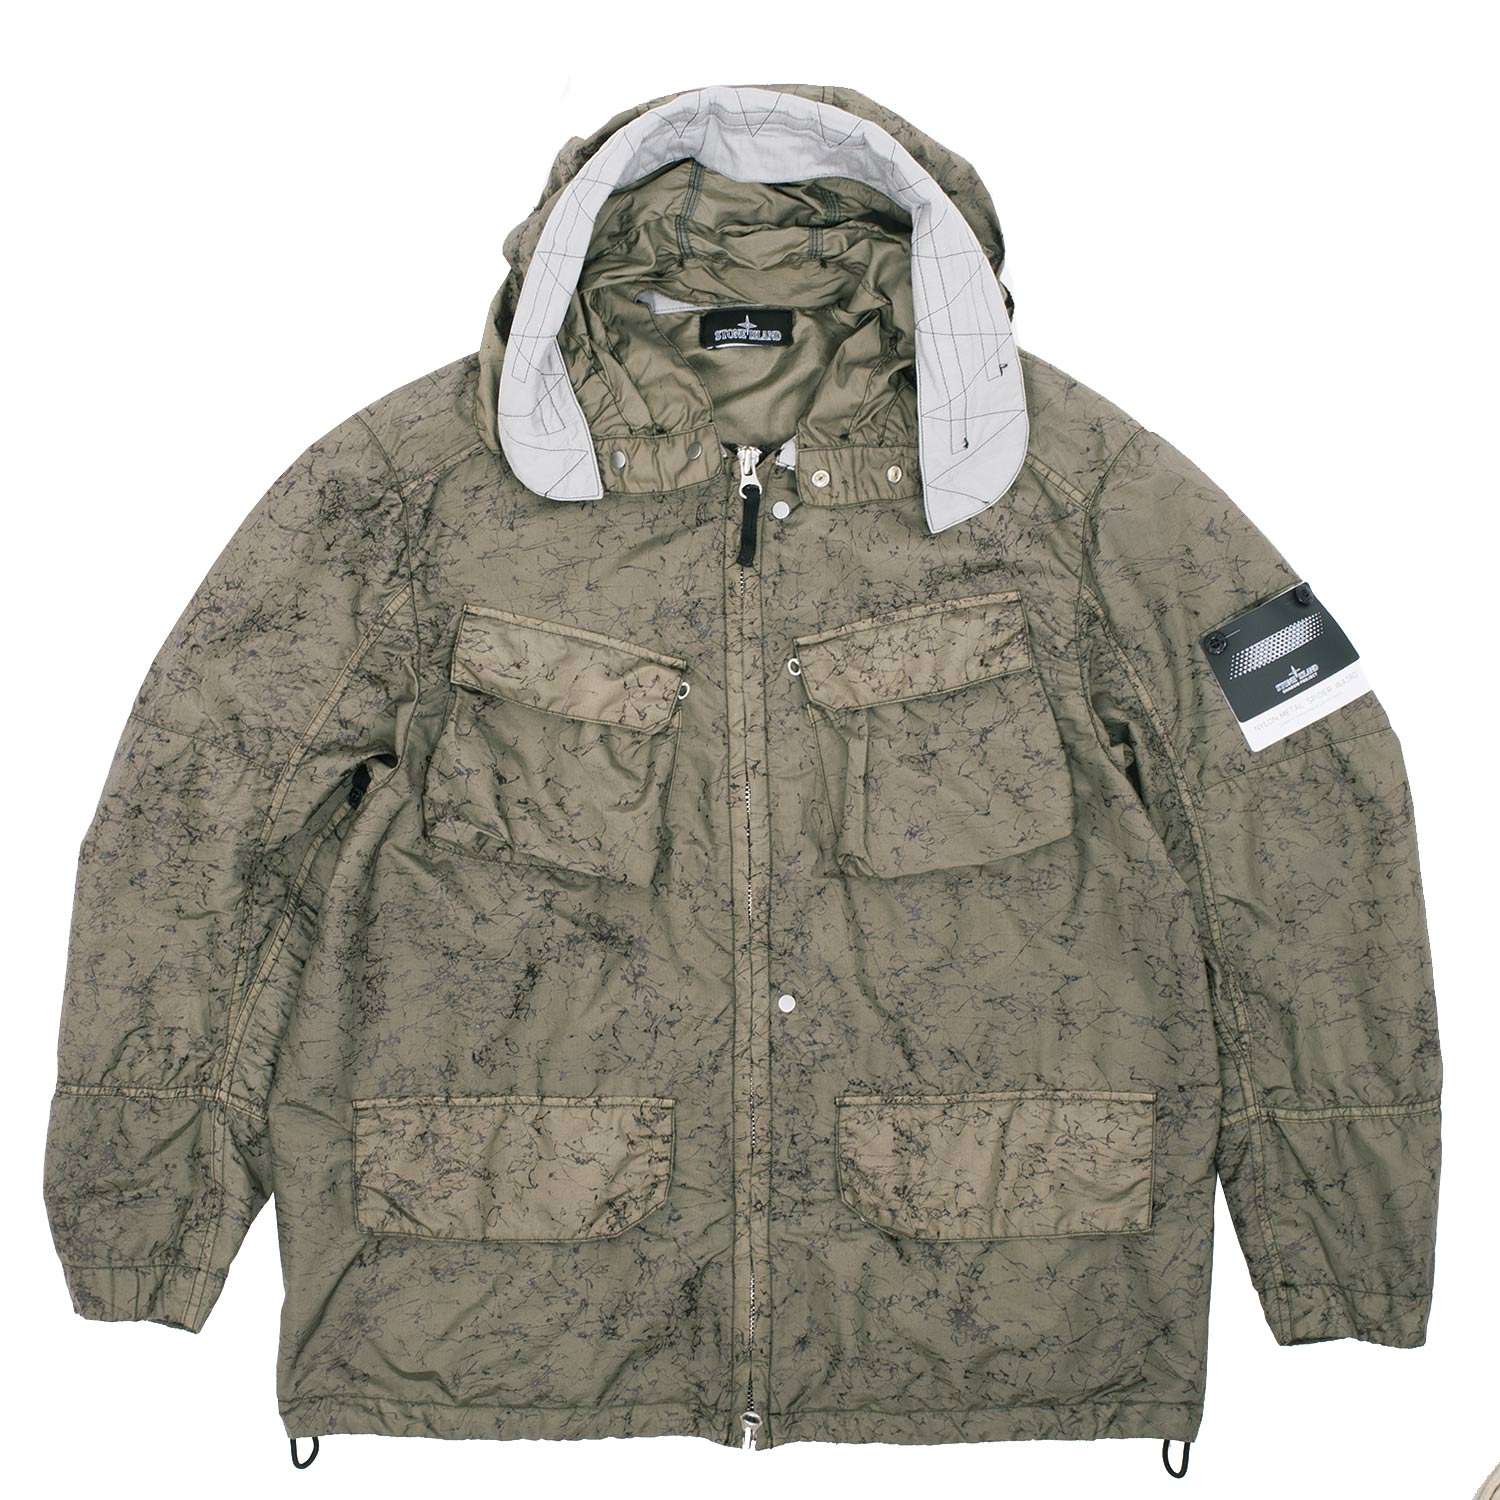 Spider Hooded Jacket Stone Island Discount Footaction Cheap Cost Outlet 2018 Newest Free Shipping Sale Online ZgCgz